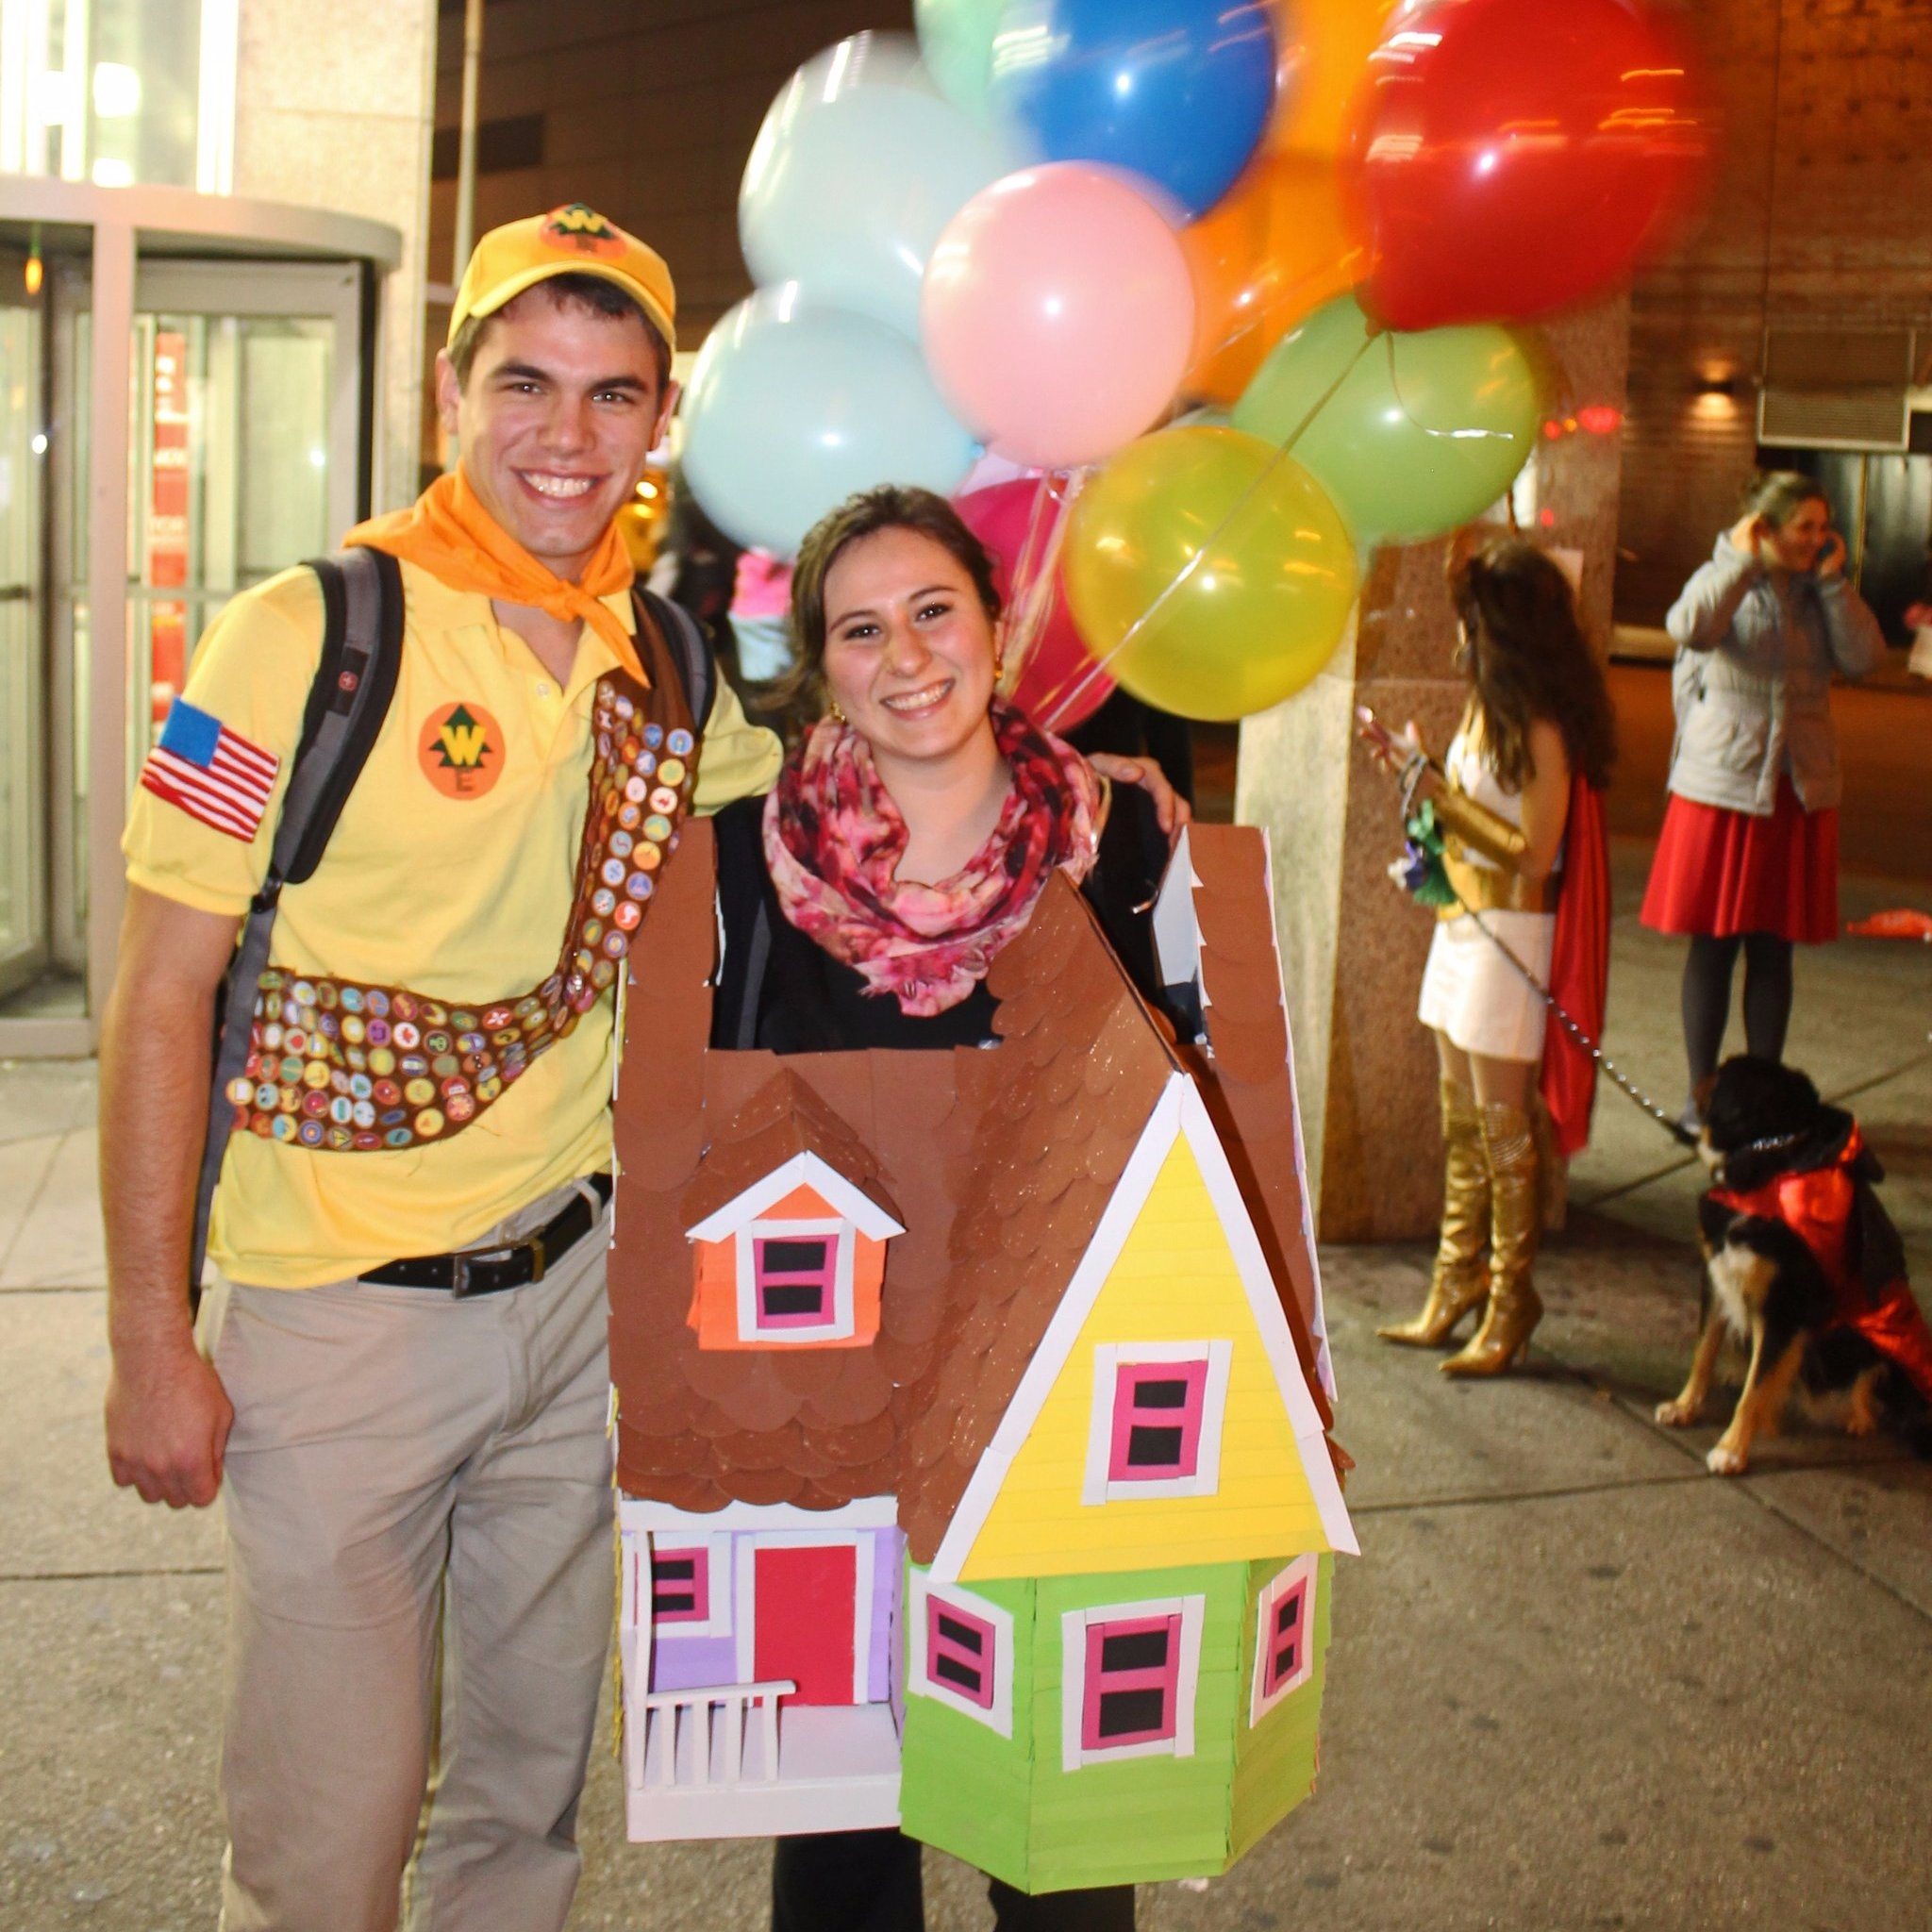 10 Stylish Cute Couple Halloween Costumes Ideas cheap diy couples halloween costumes popsugar smart living 14 2021